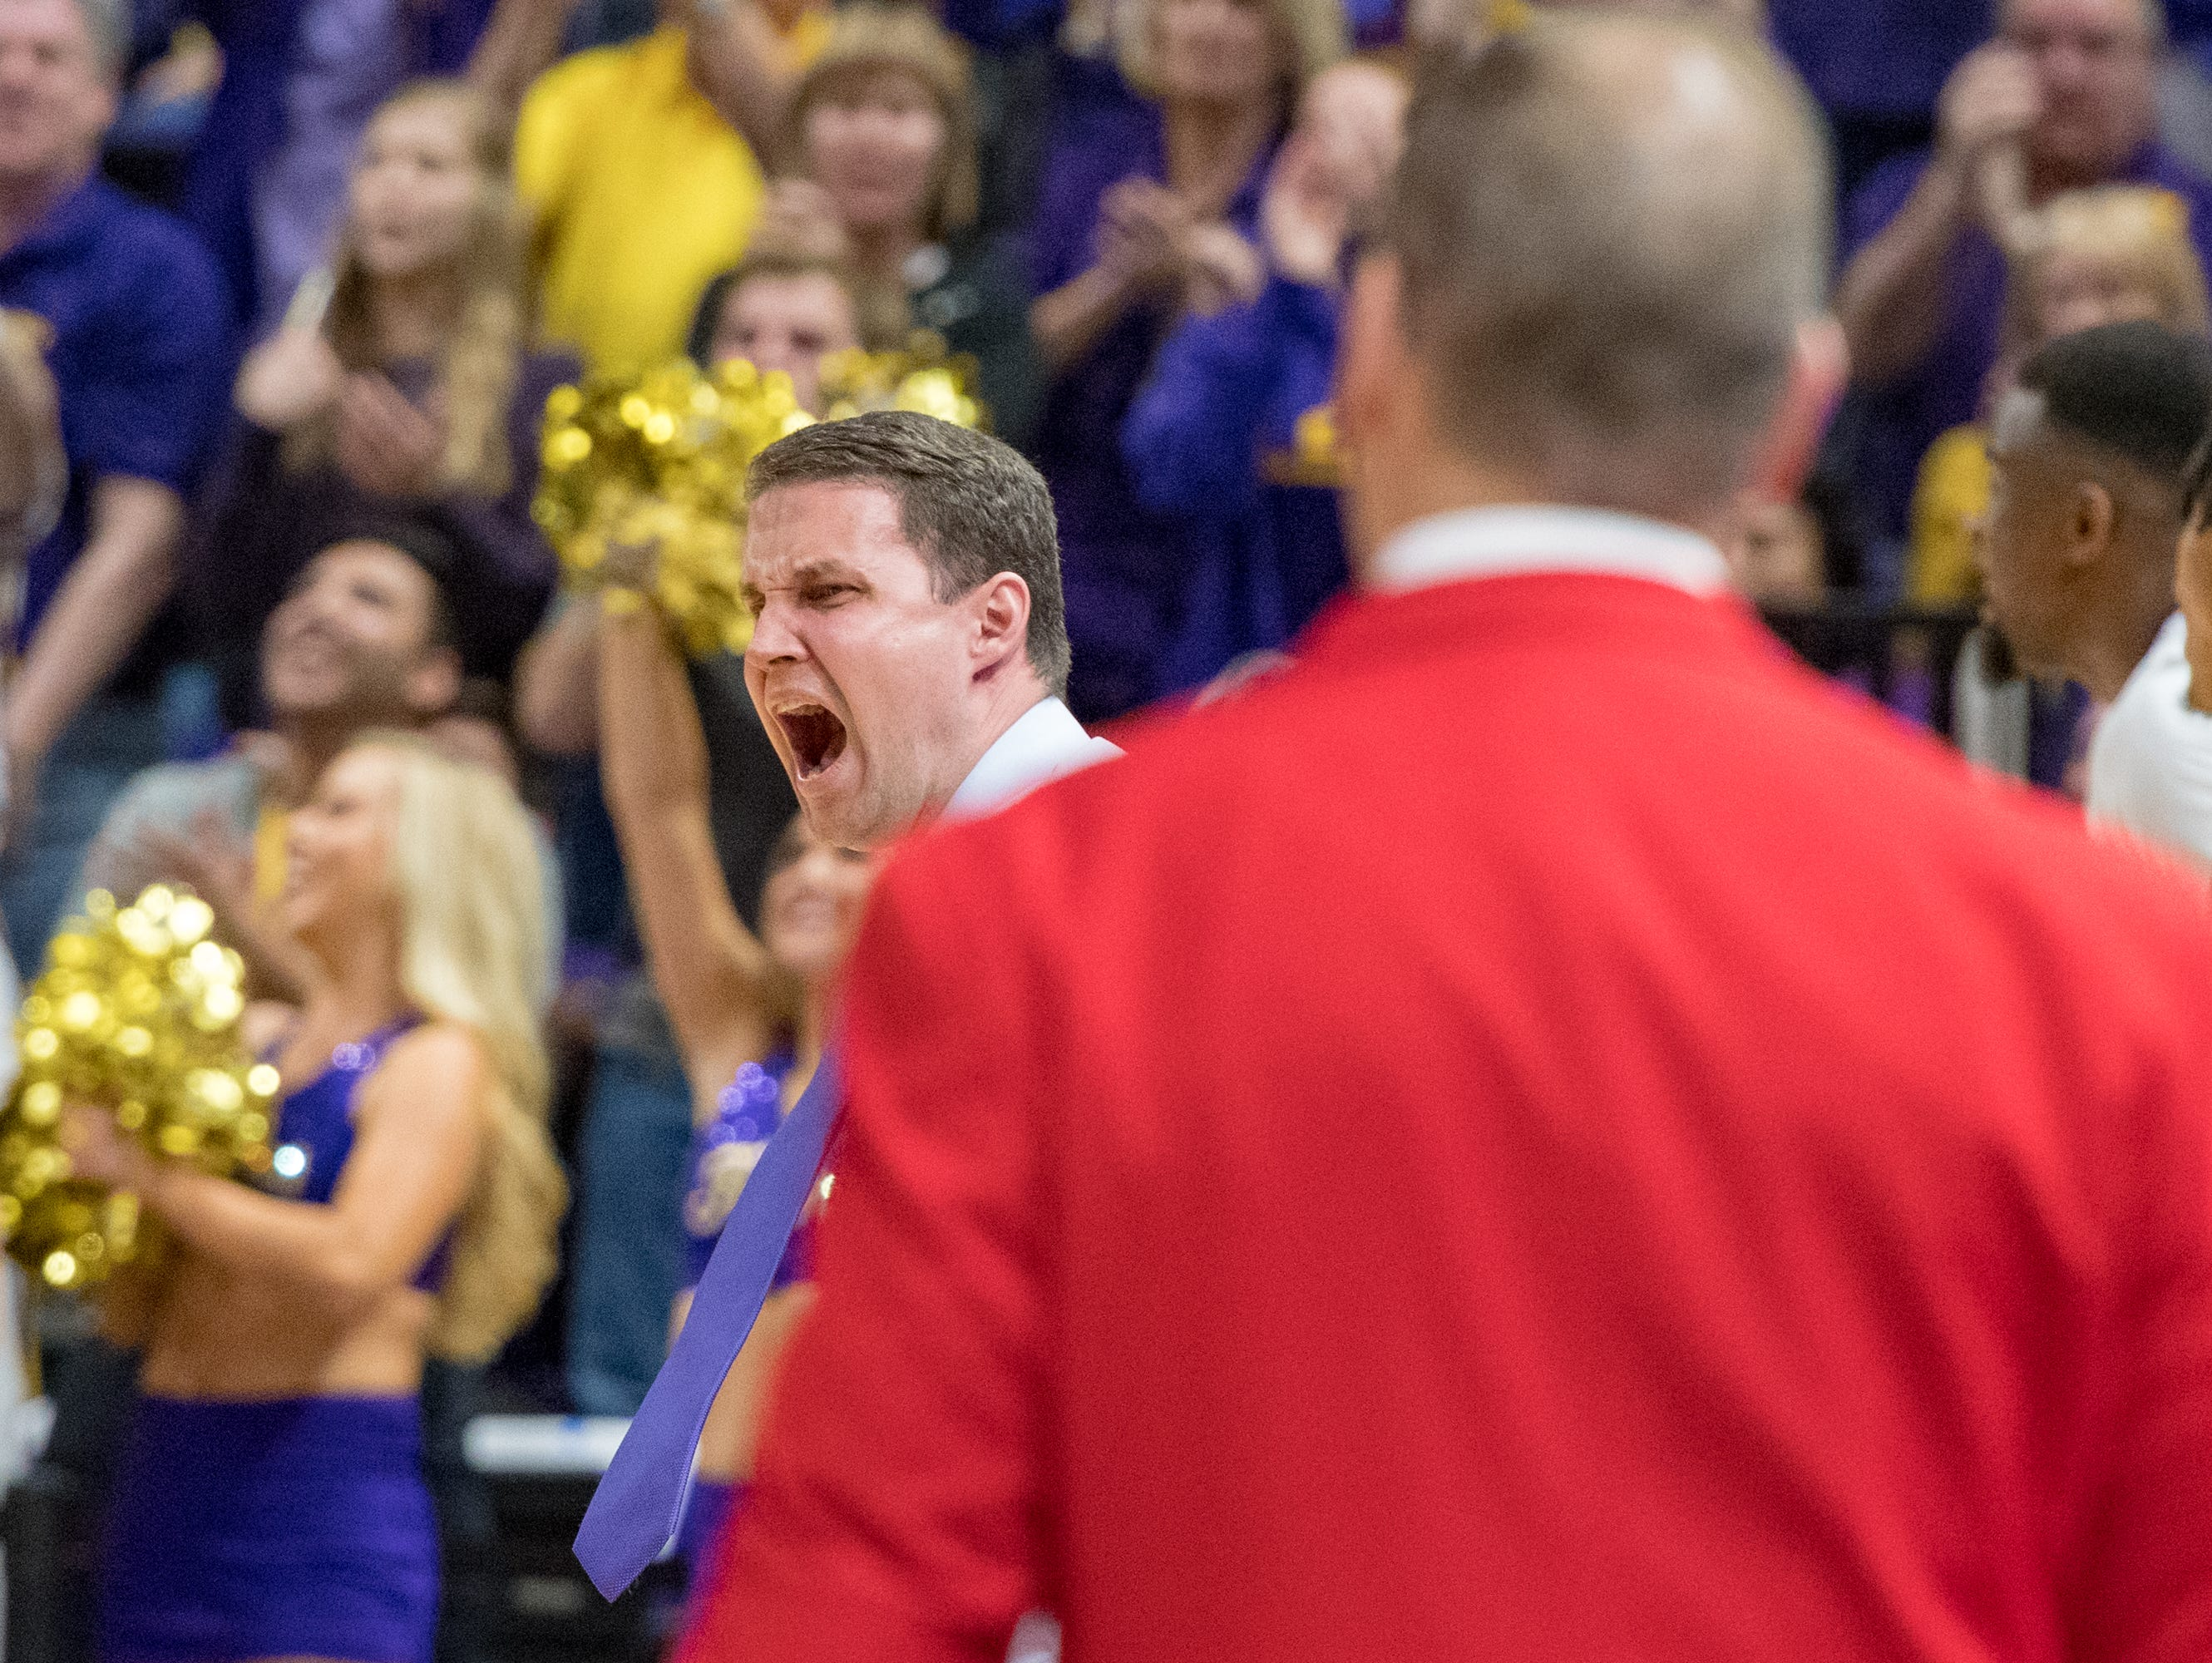 LSU head coach Will Wade as the Louisiana Ragin' Cajuns take on the LSU Tigers in the Pete Maravich Assembly Center. Baton Rouge, LA. Wednesday, March 14, 2018.